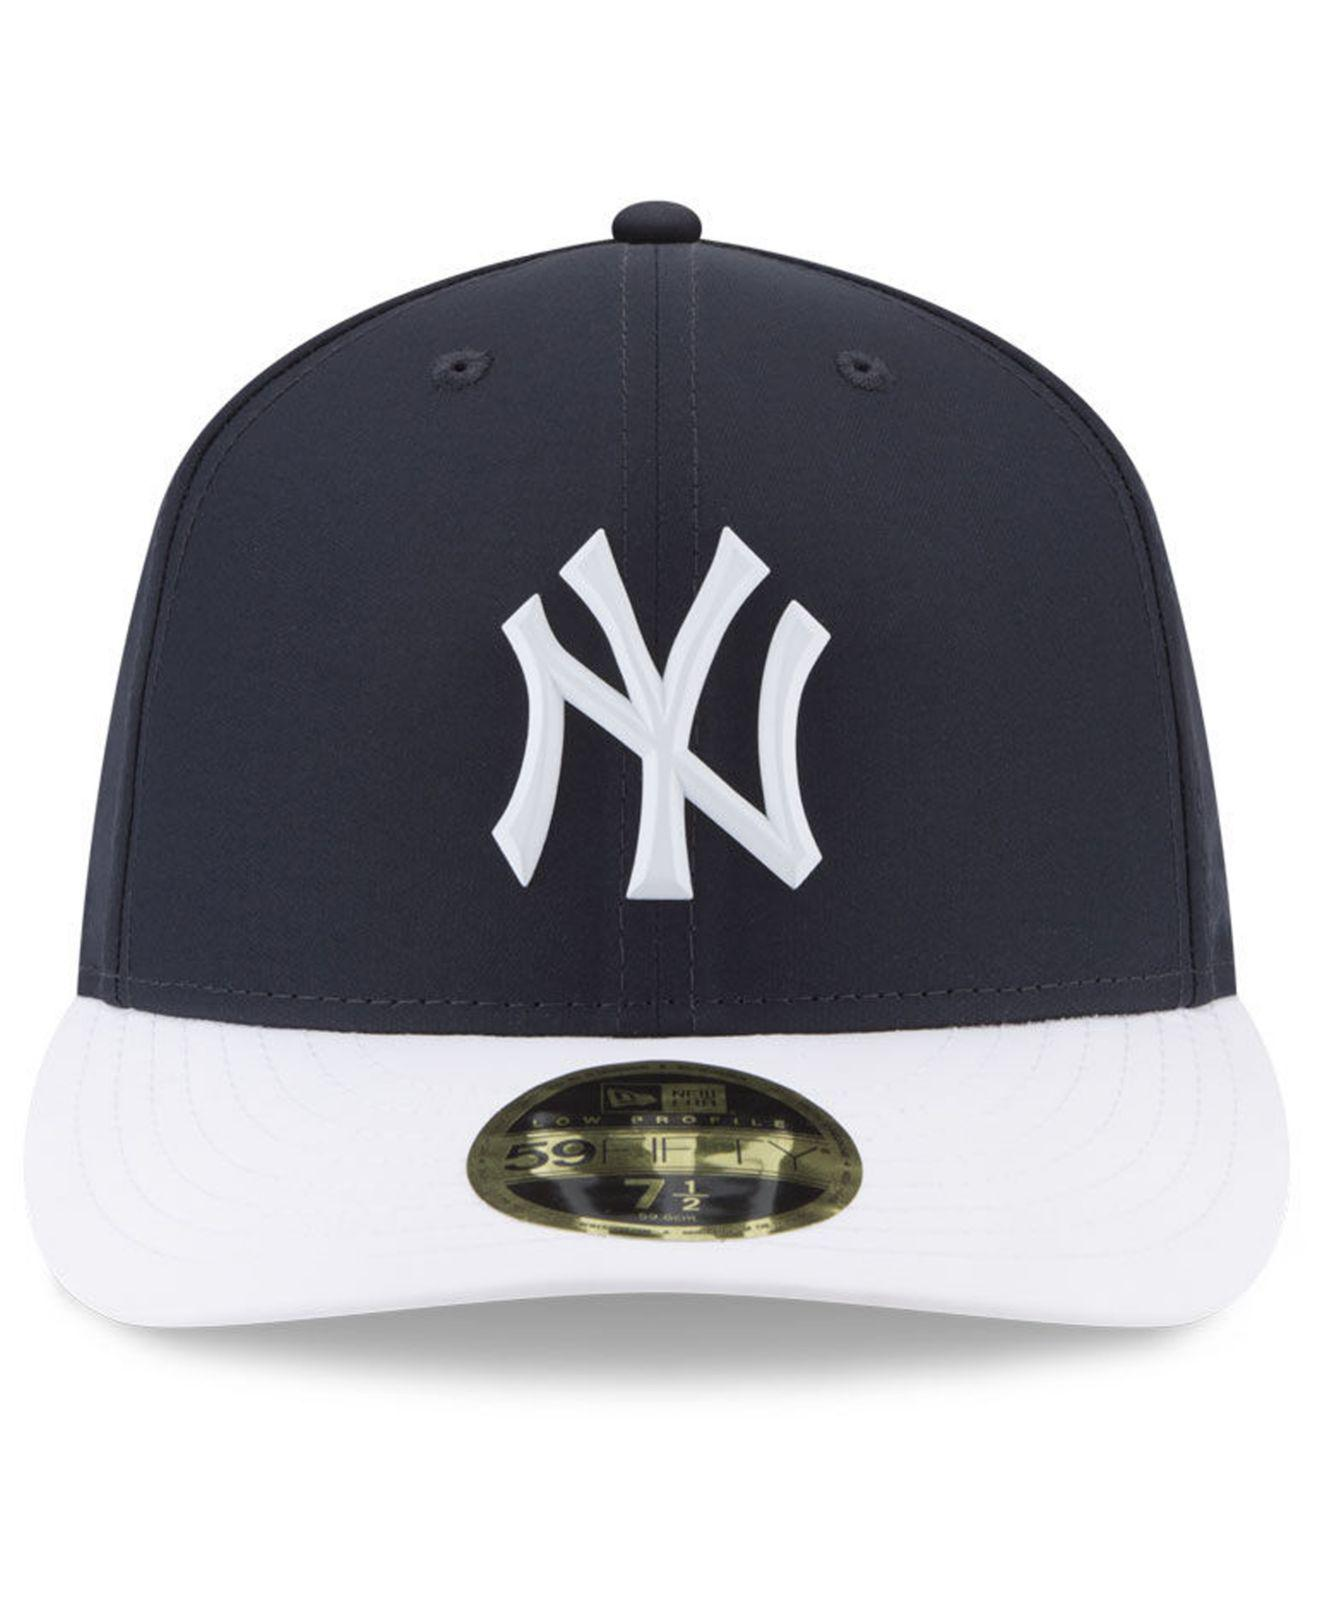 Lyst - KTZ New York Yankees Spring Training Pro Light 59fifty Fitted Cap in  Blue for Men - Save 63% dfc011e84f8